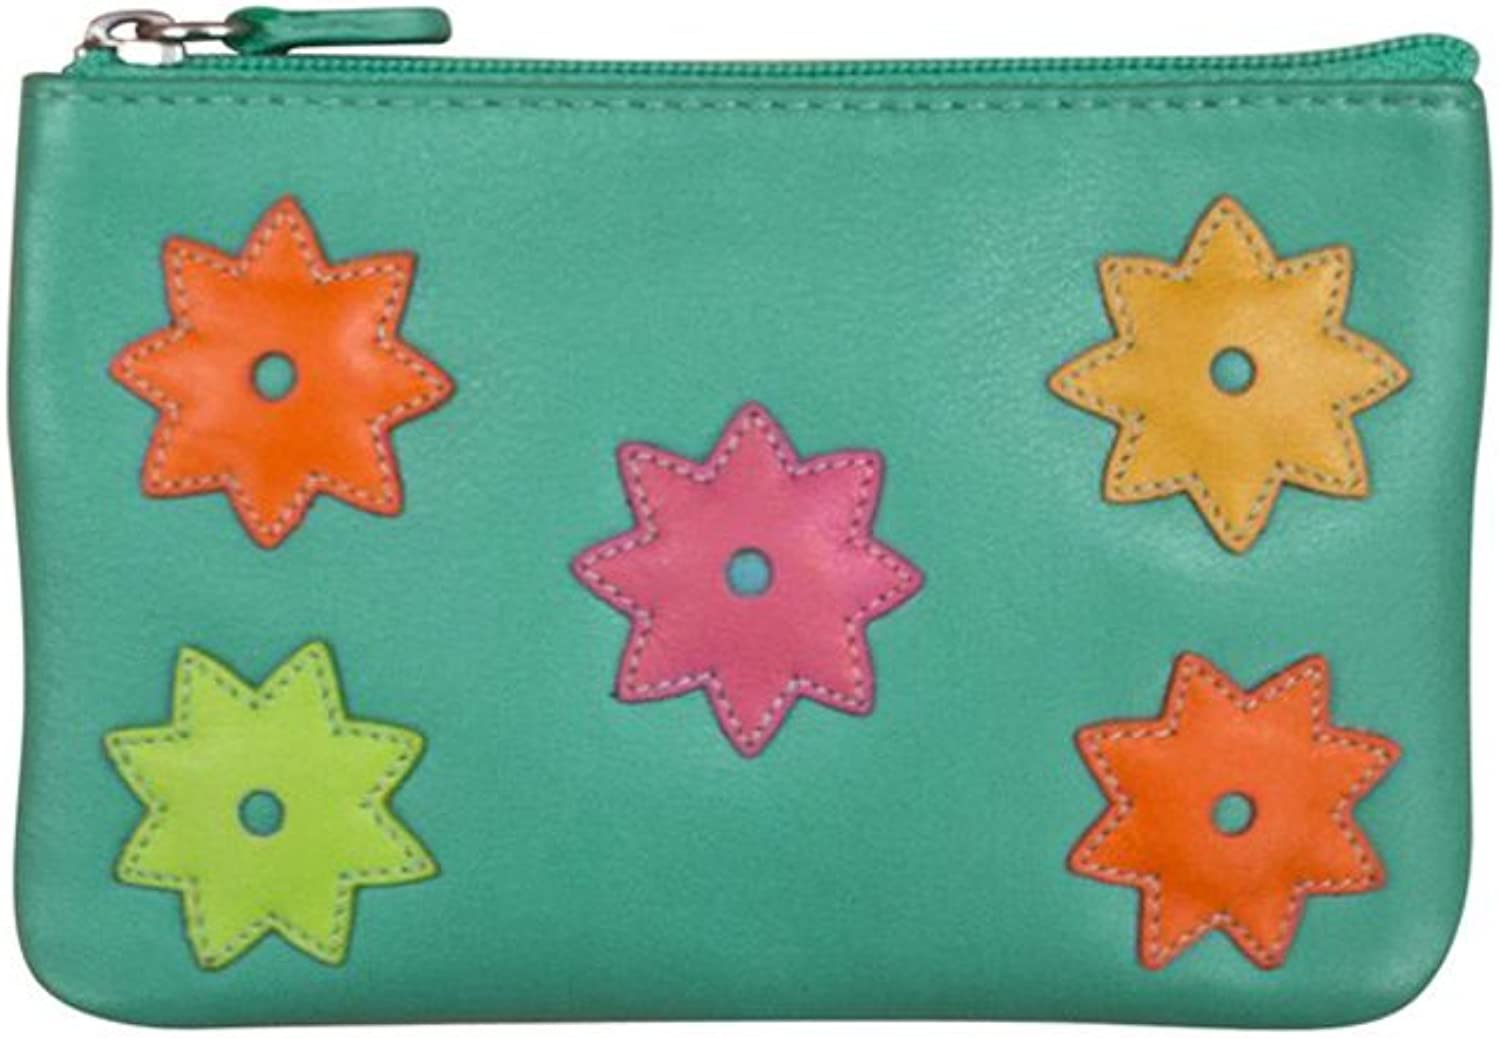 Ili 6442 Leather Coin Holder with Flower Power Detail